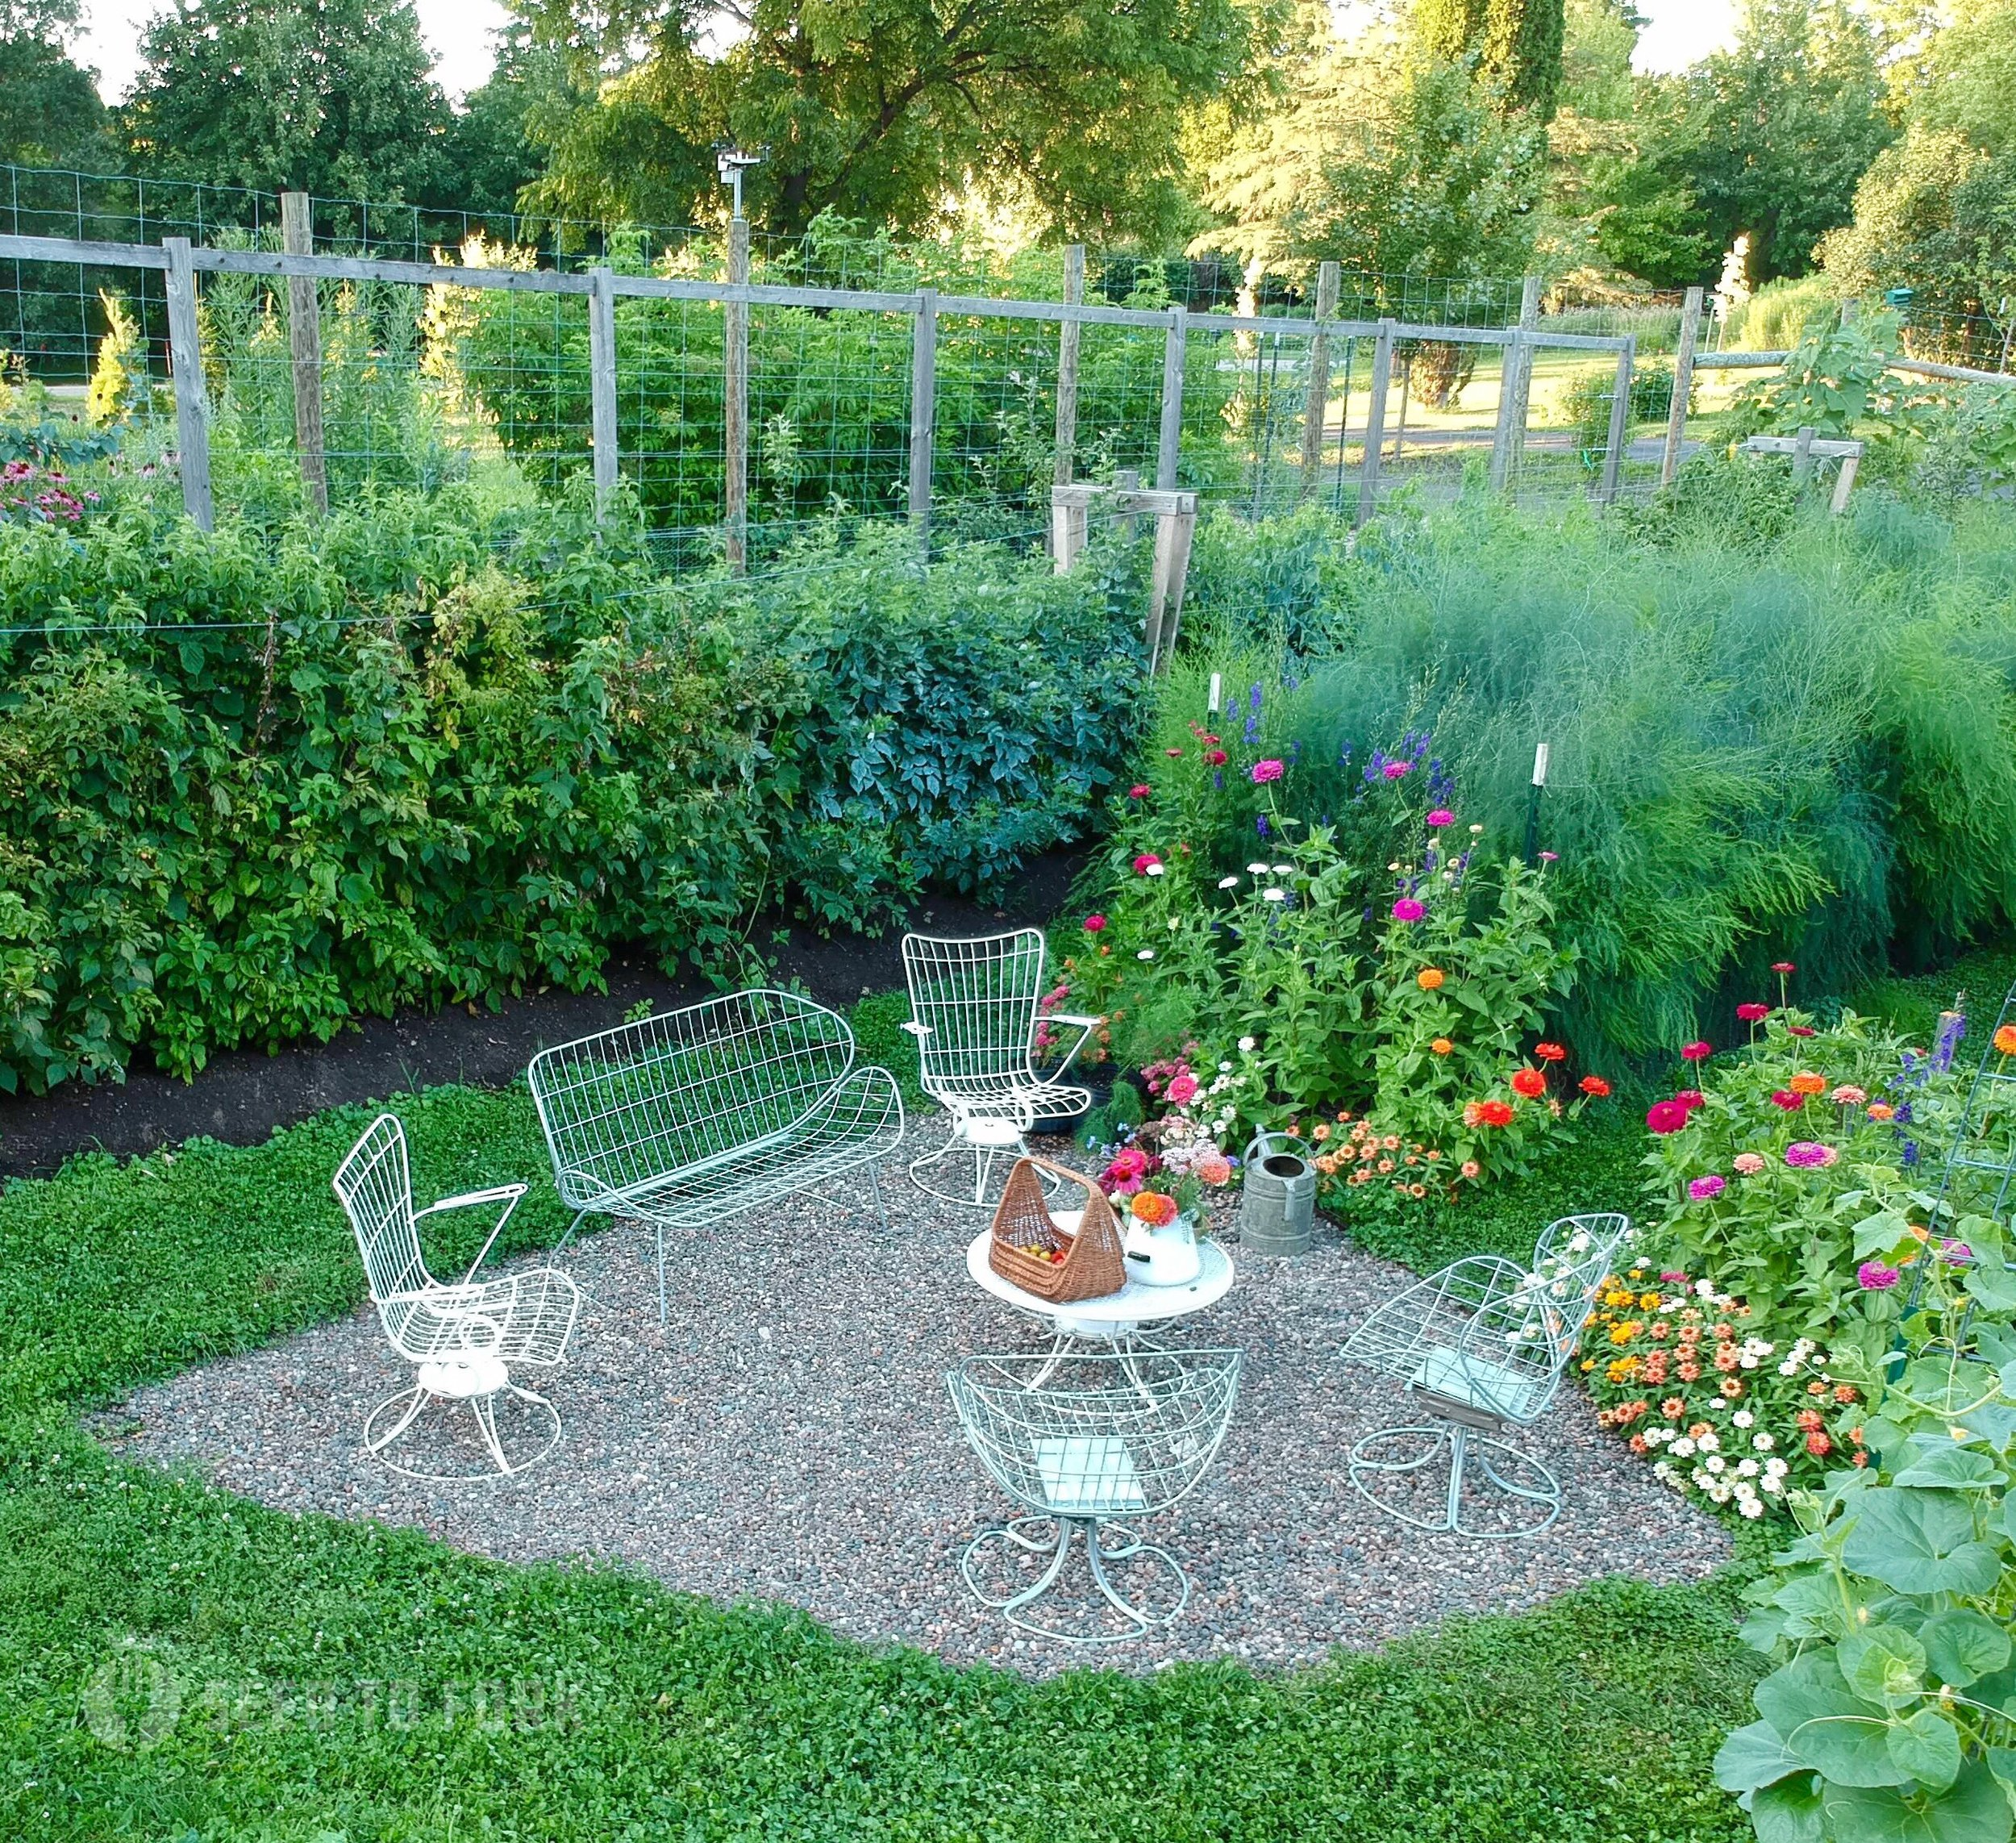 The garden patio, my outdoor room, is irregularly shaped just like every other bed and is close to it's dream come true state. We would love to add a pergola for dappled shade in the heat of summer. But it's pretty special just as it is today.